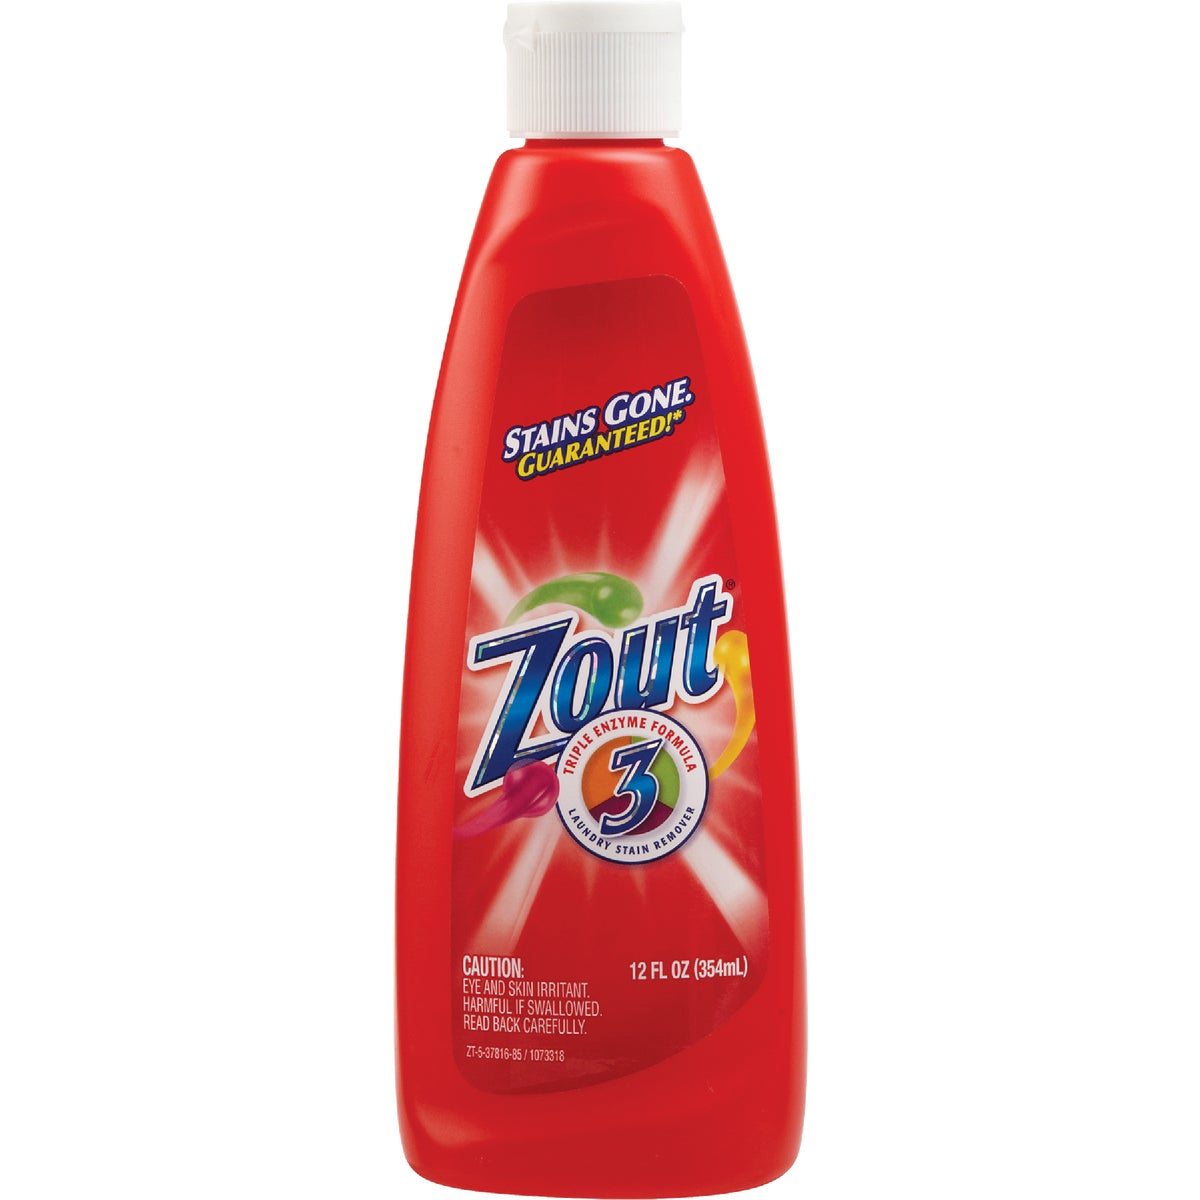 12OZ ZOUT STAIN REMOVER